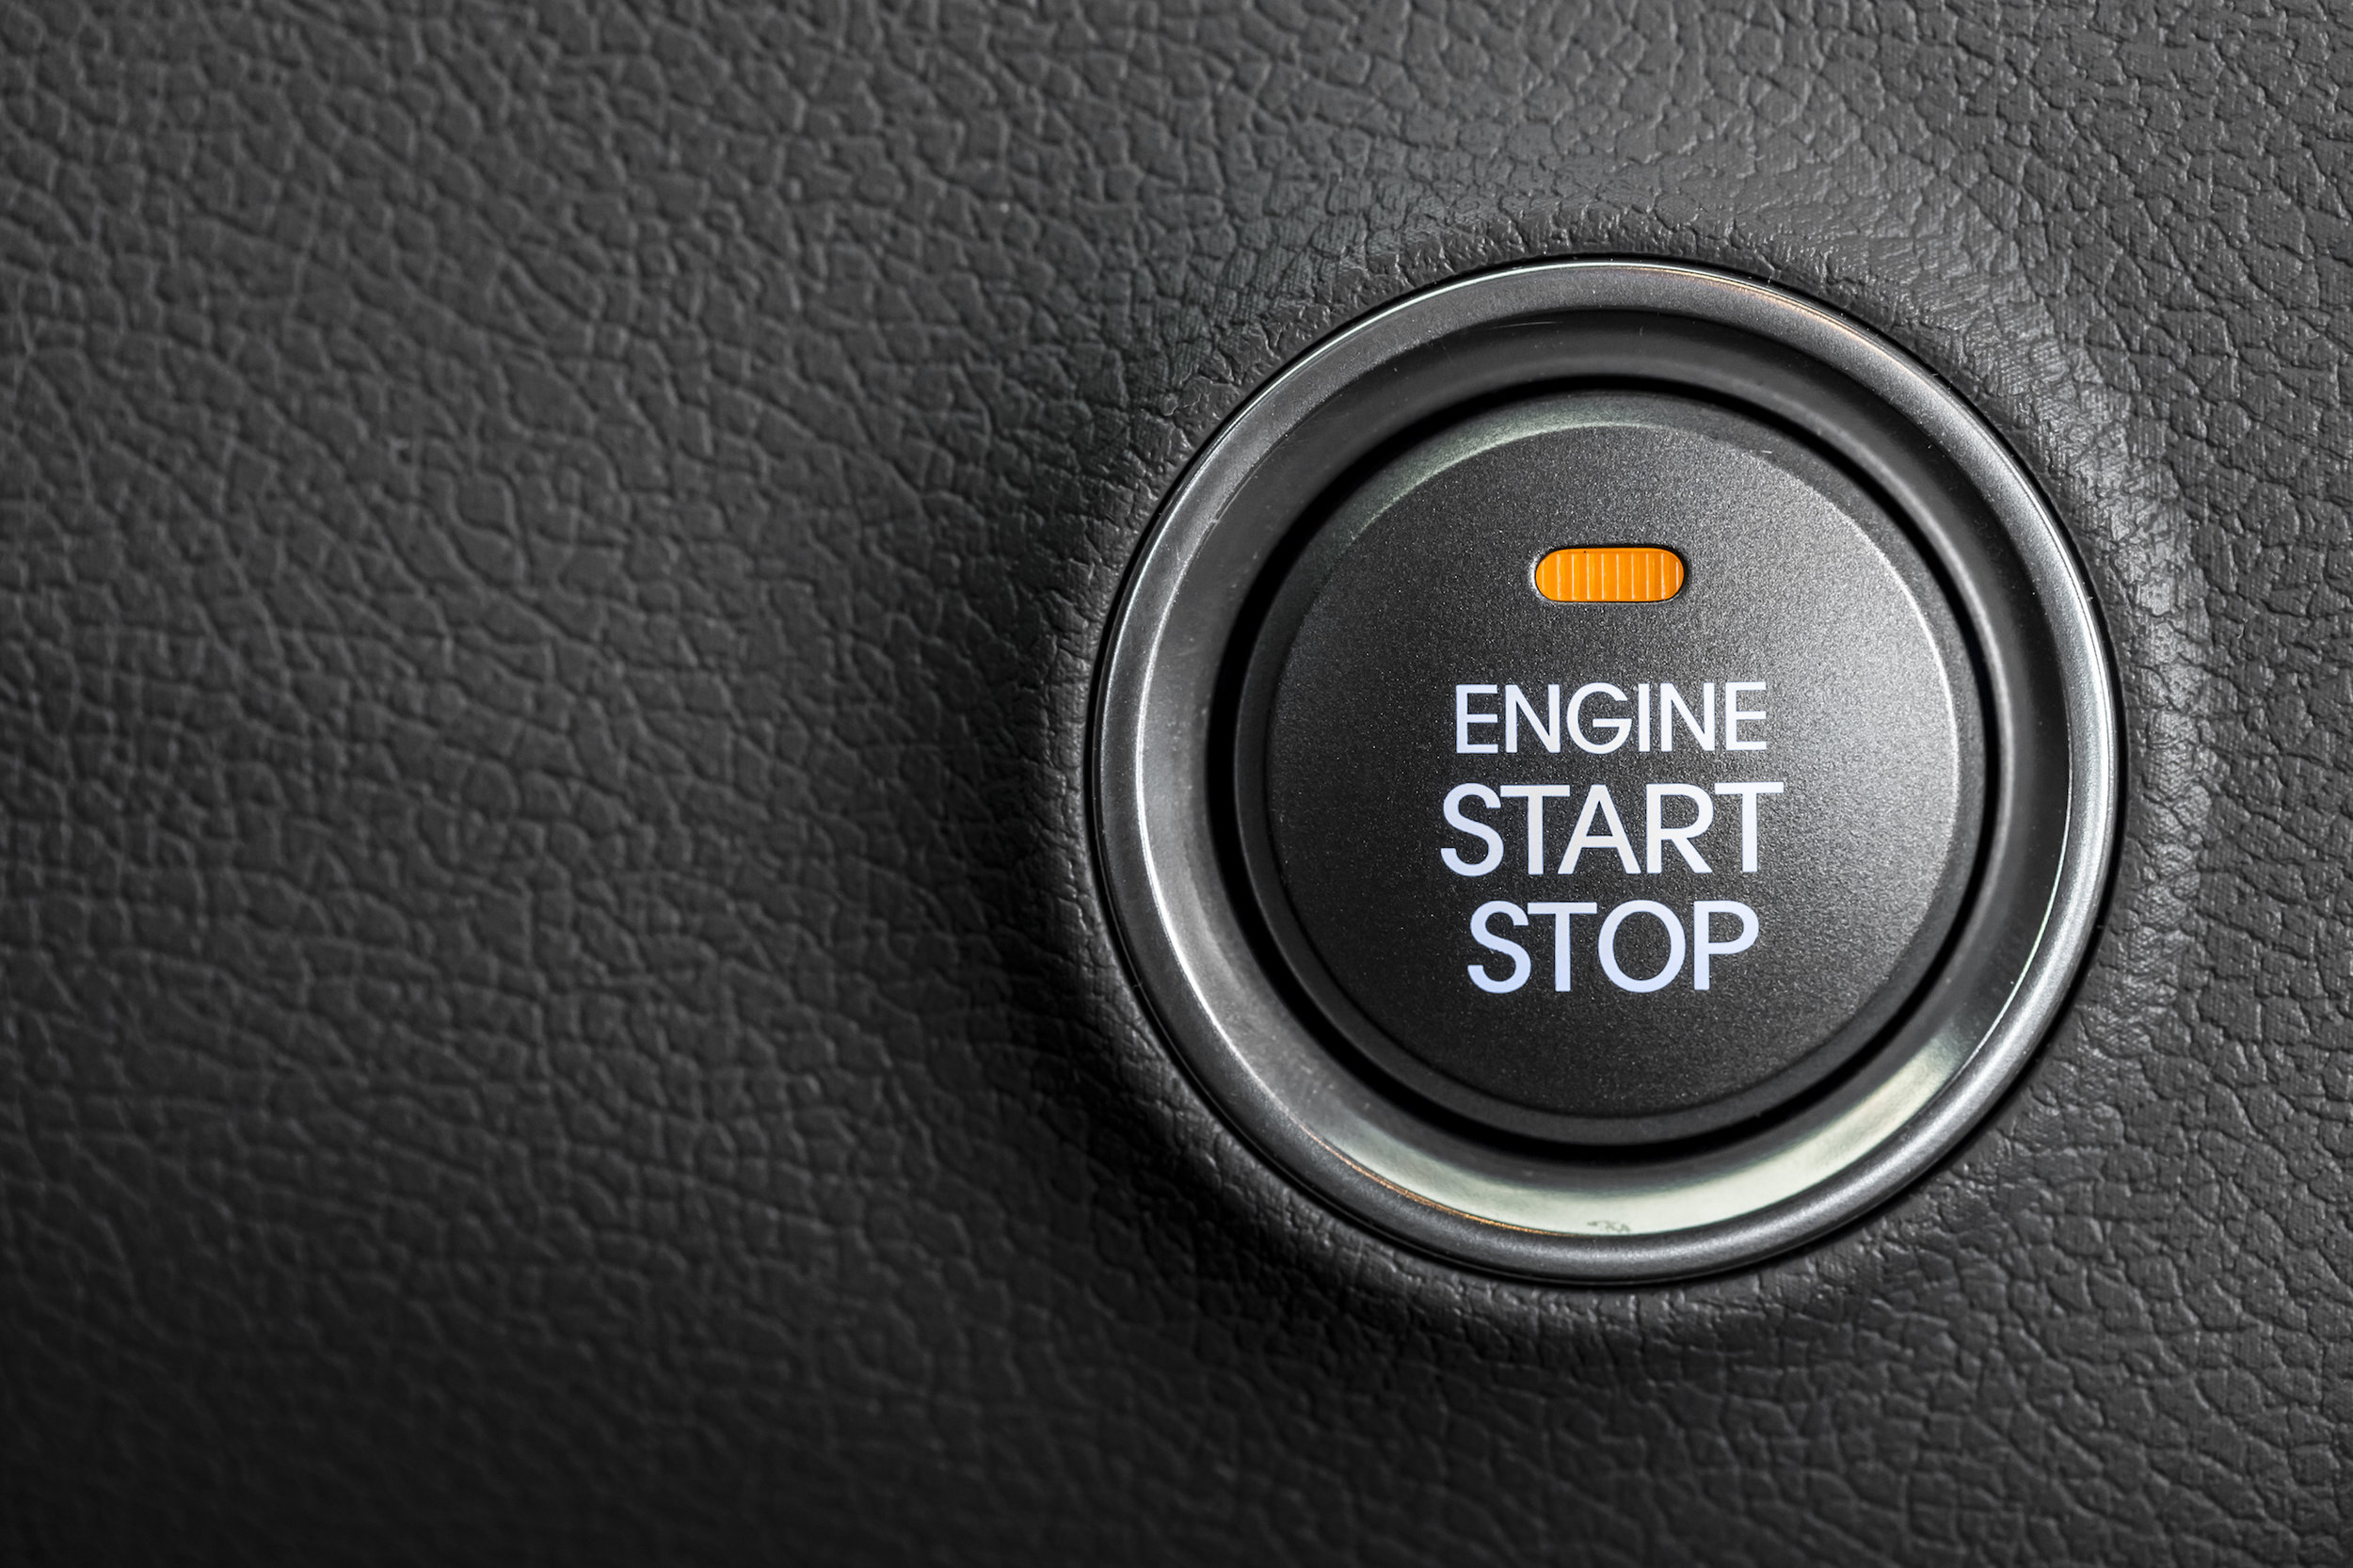 Push to start car - This Device Blows - IID Requirement for DUI |The Law Offices of Bryan R. Kazarian - Los Angeles County Criminal Defense Attorneys - property, juvenile, petty theft, DUI, misdemeanor, and felony Criminal Law